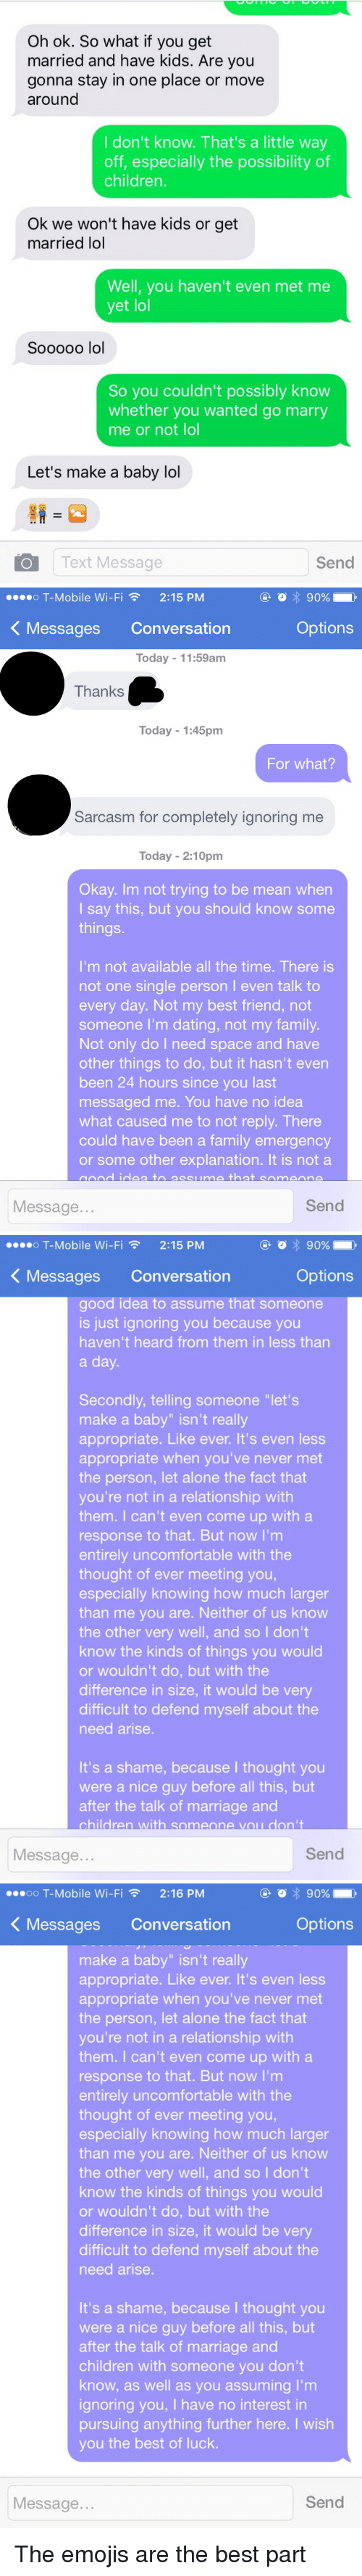 How to respond to online dating message not interested